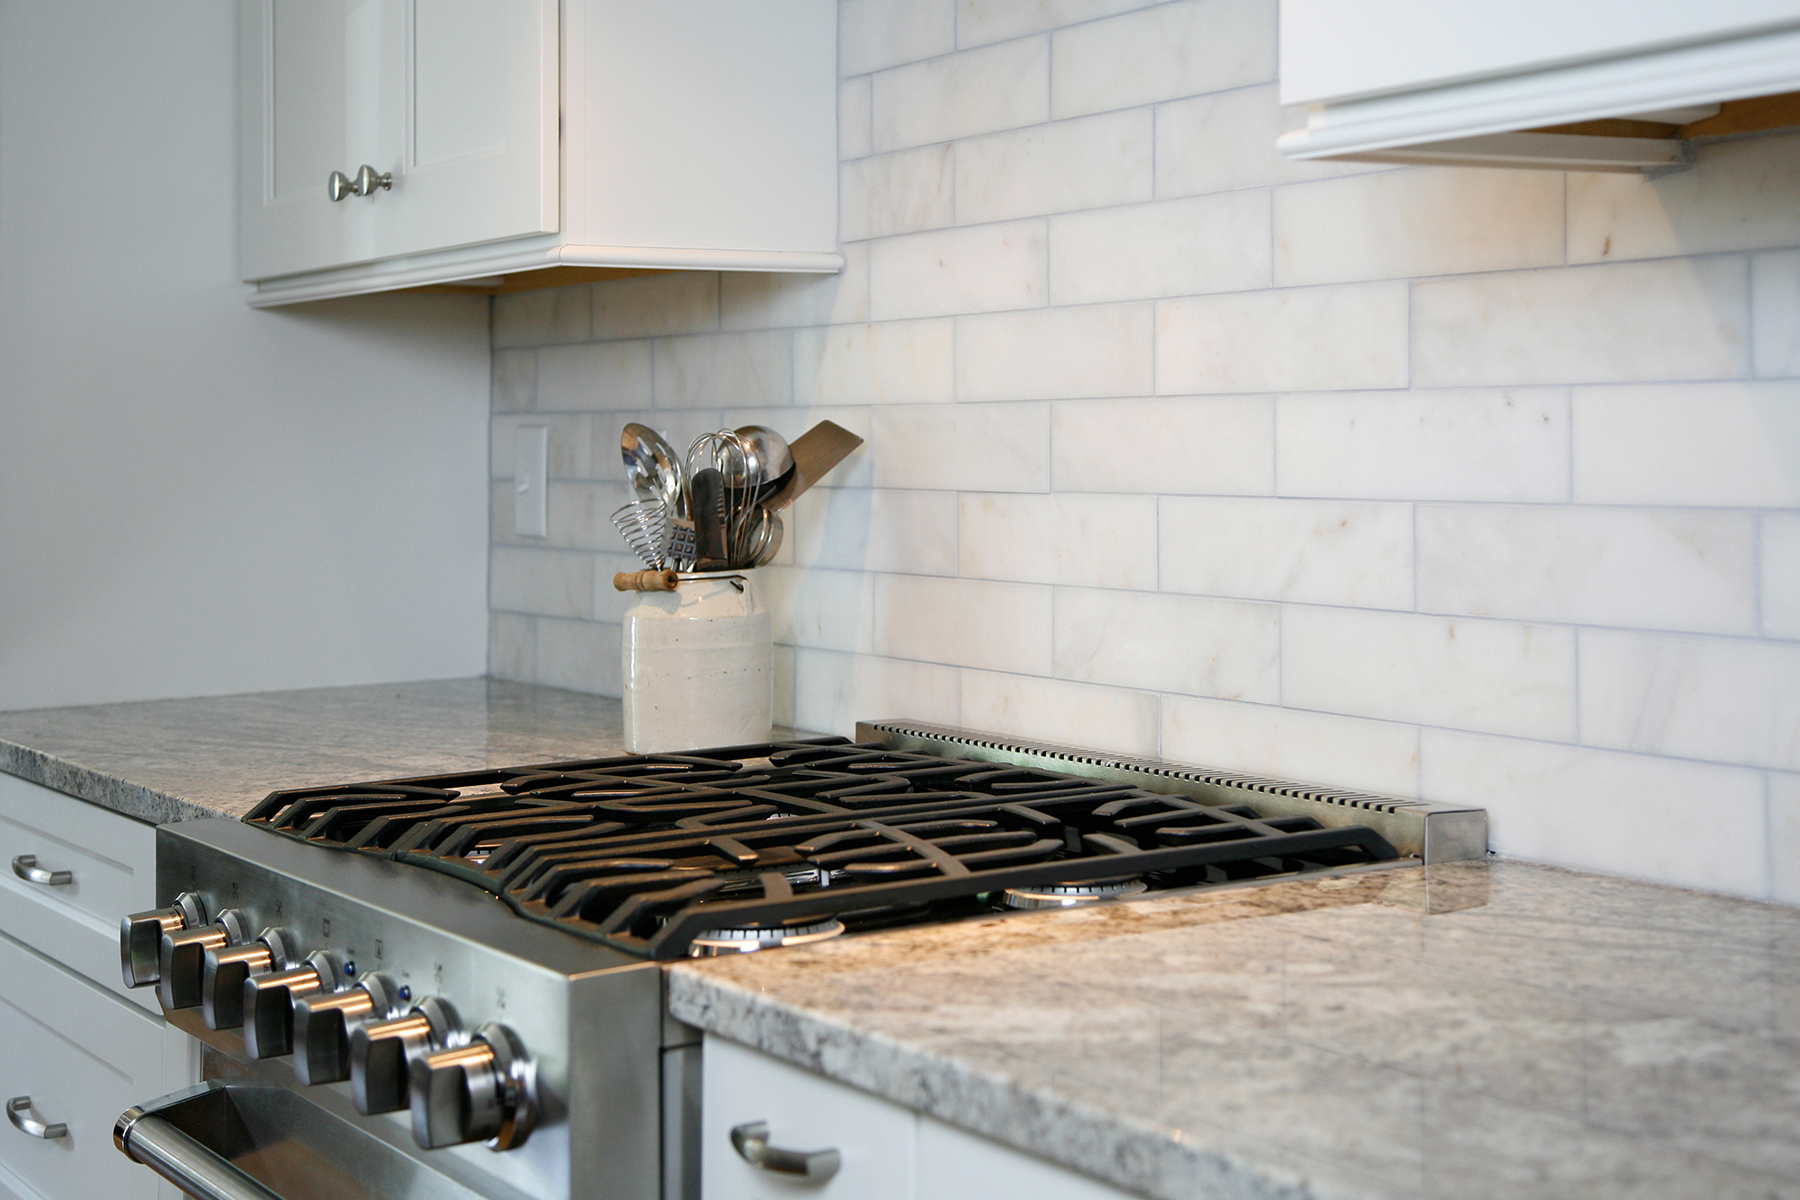 Close-up of stove and backsplash after